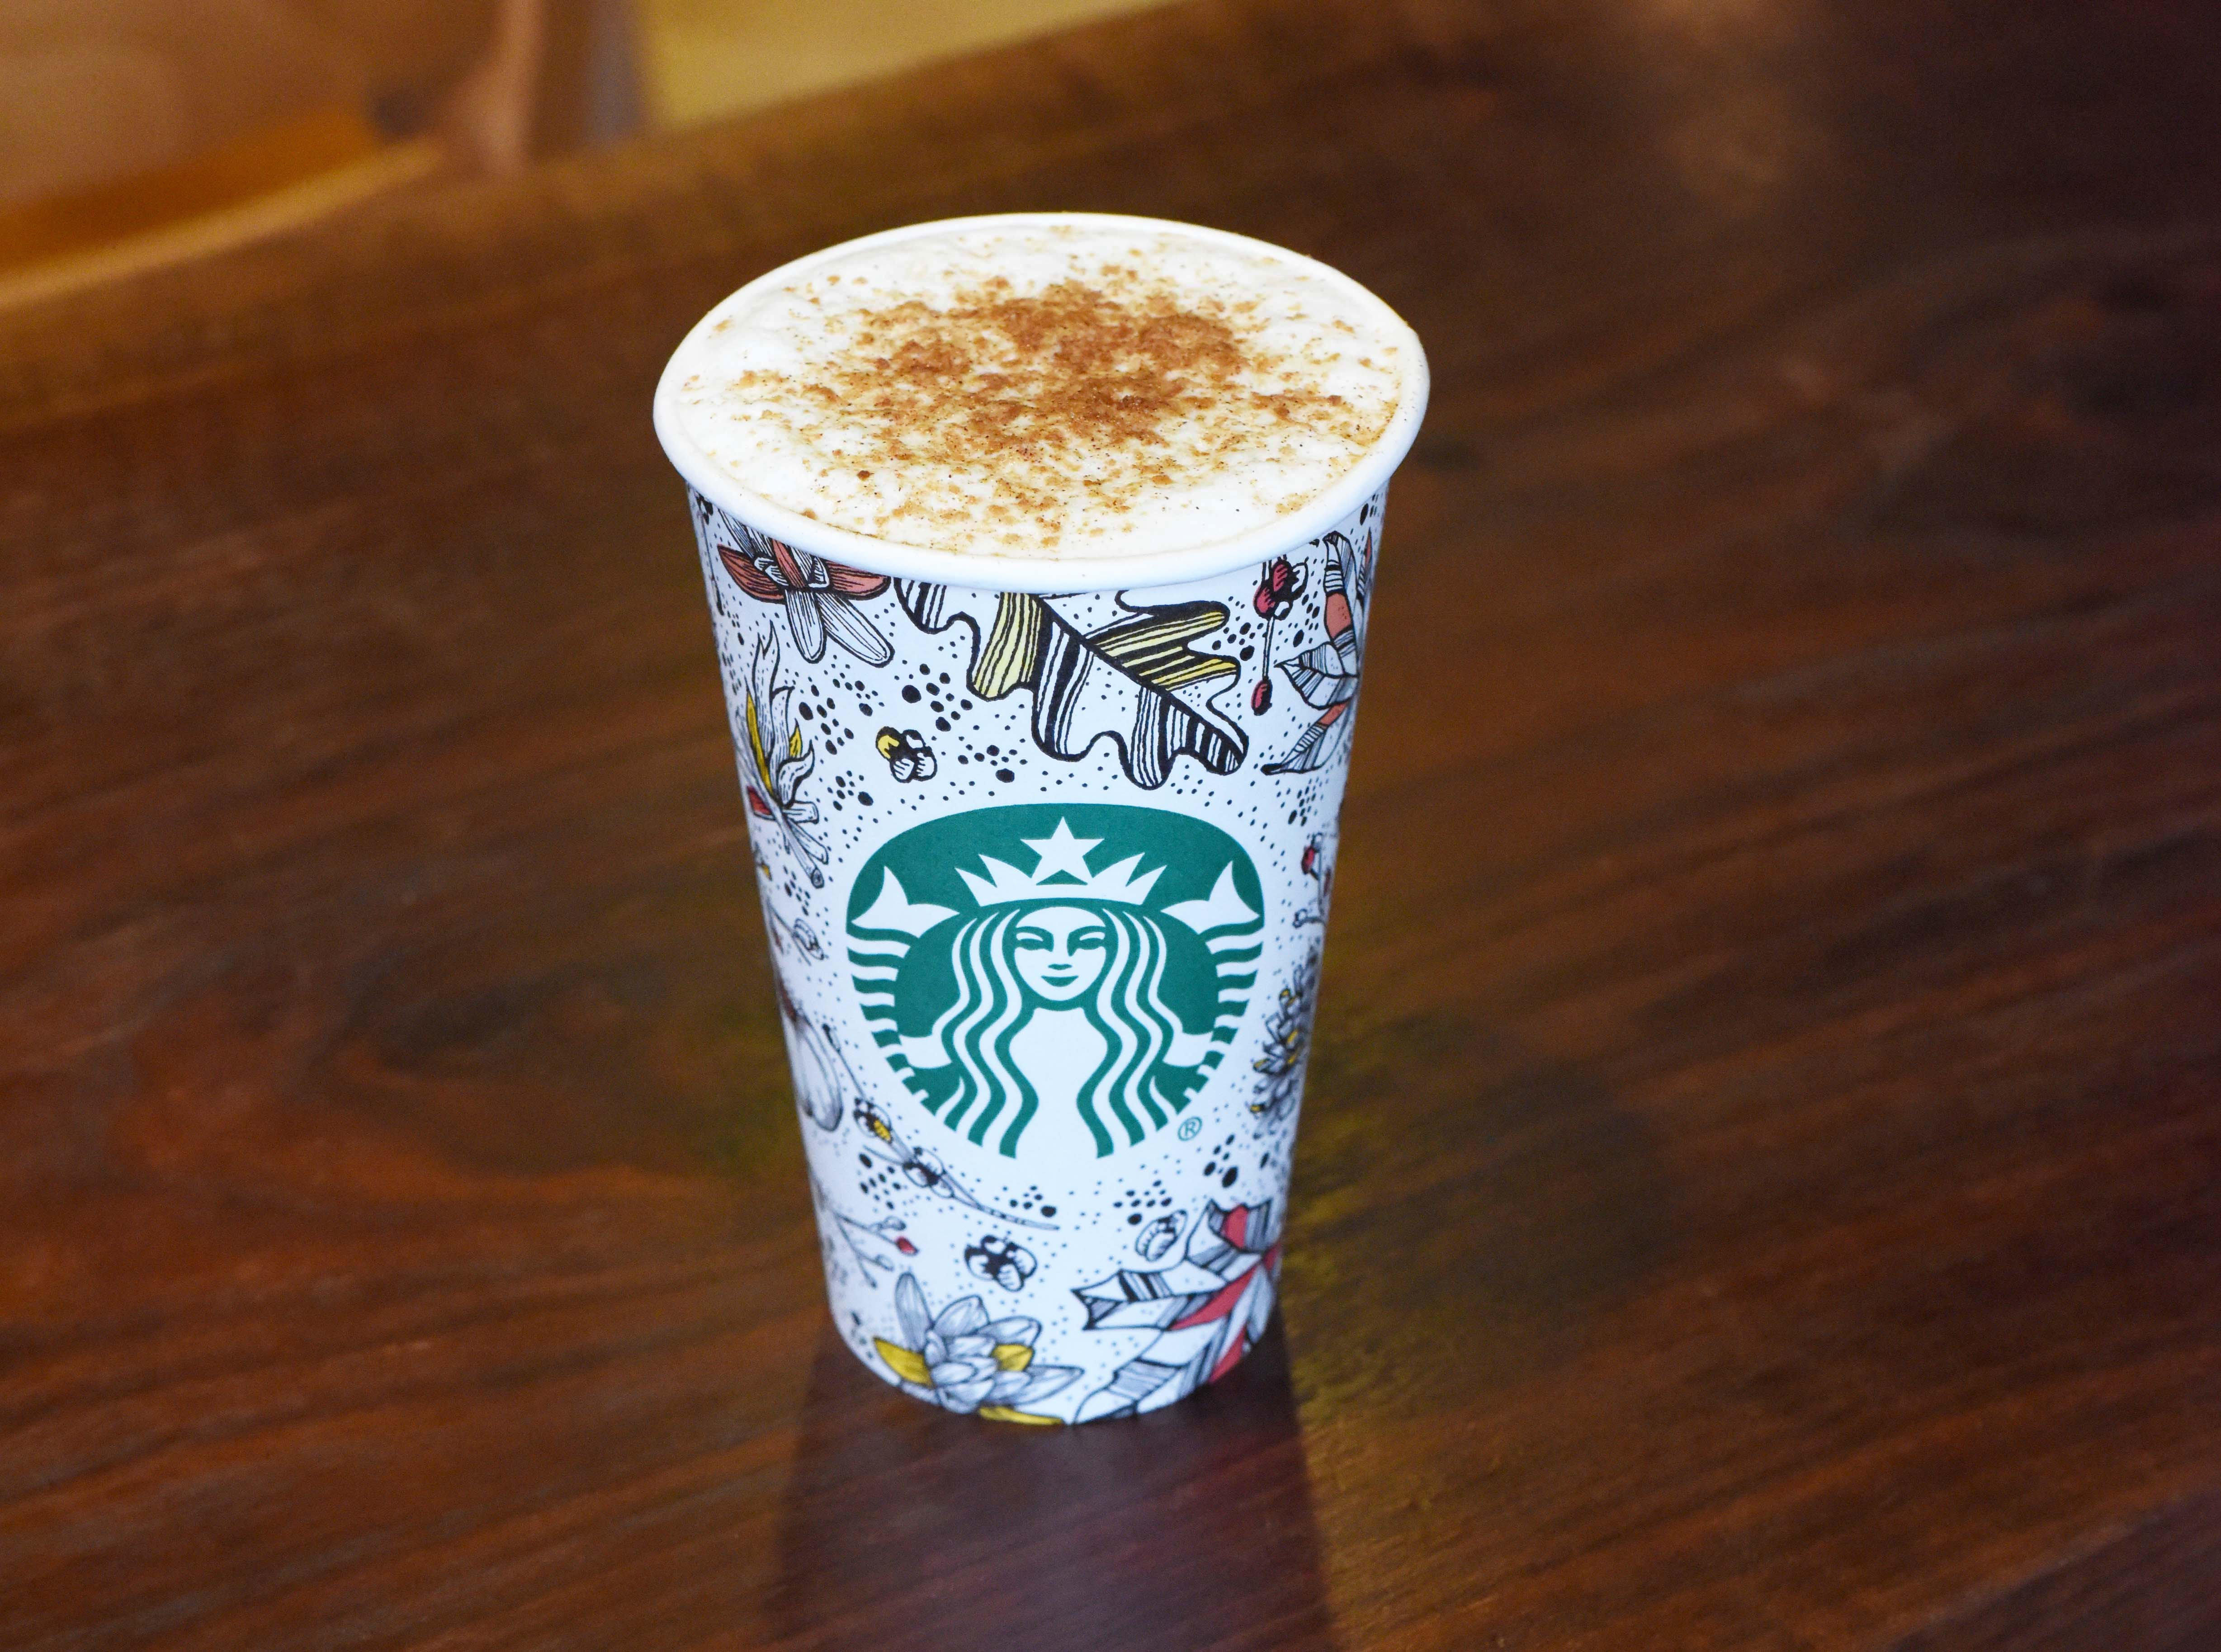 The new Toasted Graham Latte